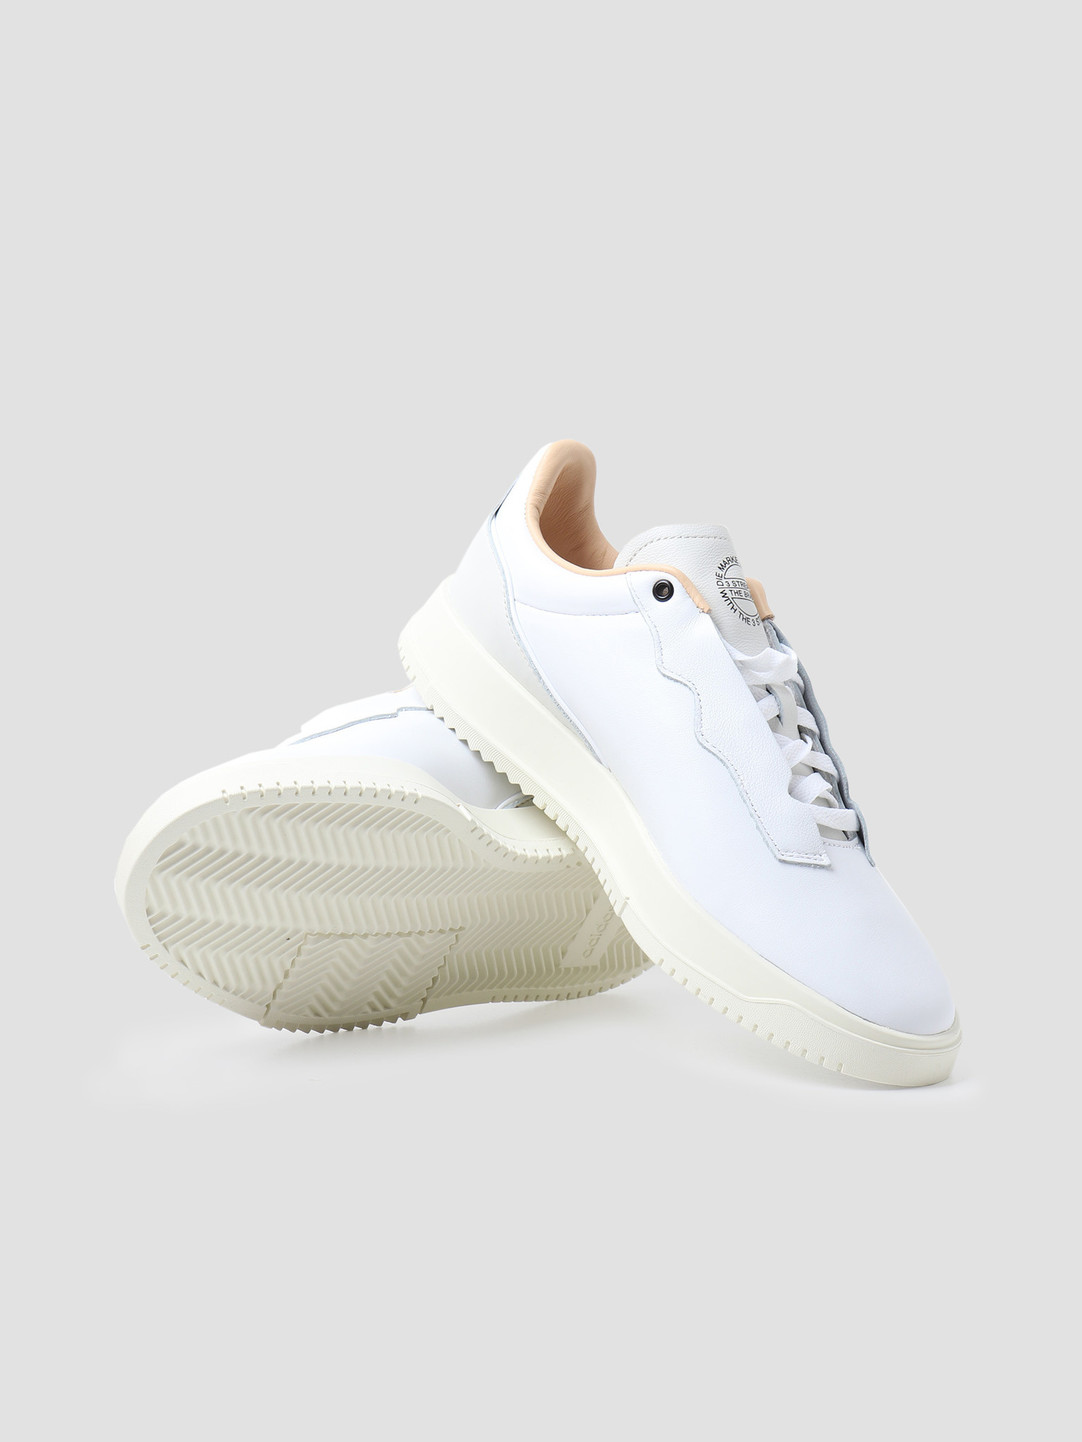 adidas adidas Supercourt Footwear White Crystal White Off White FX5724